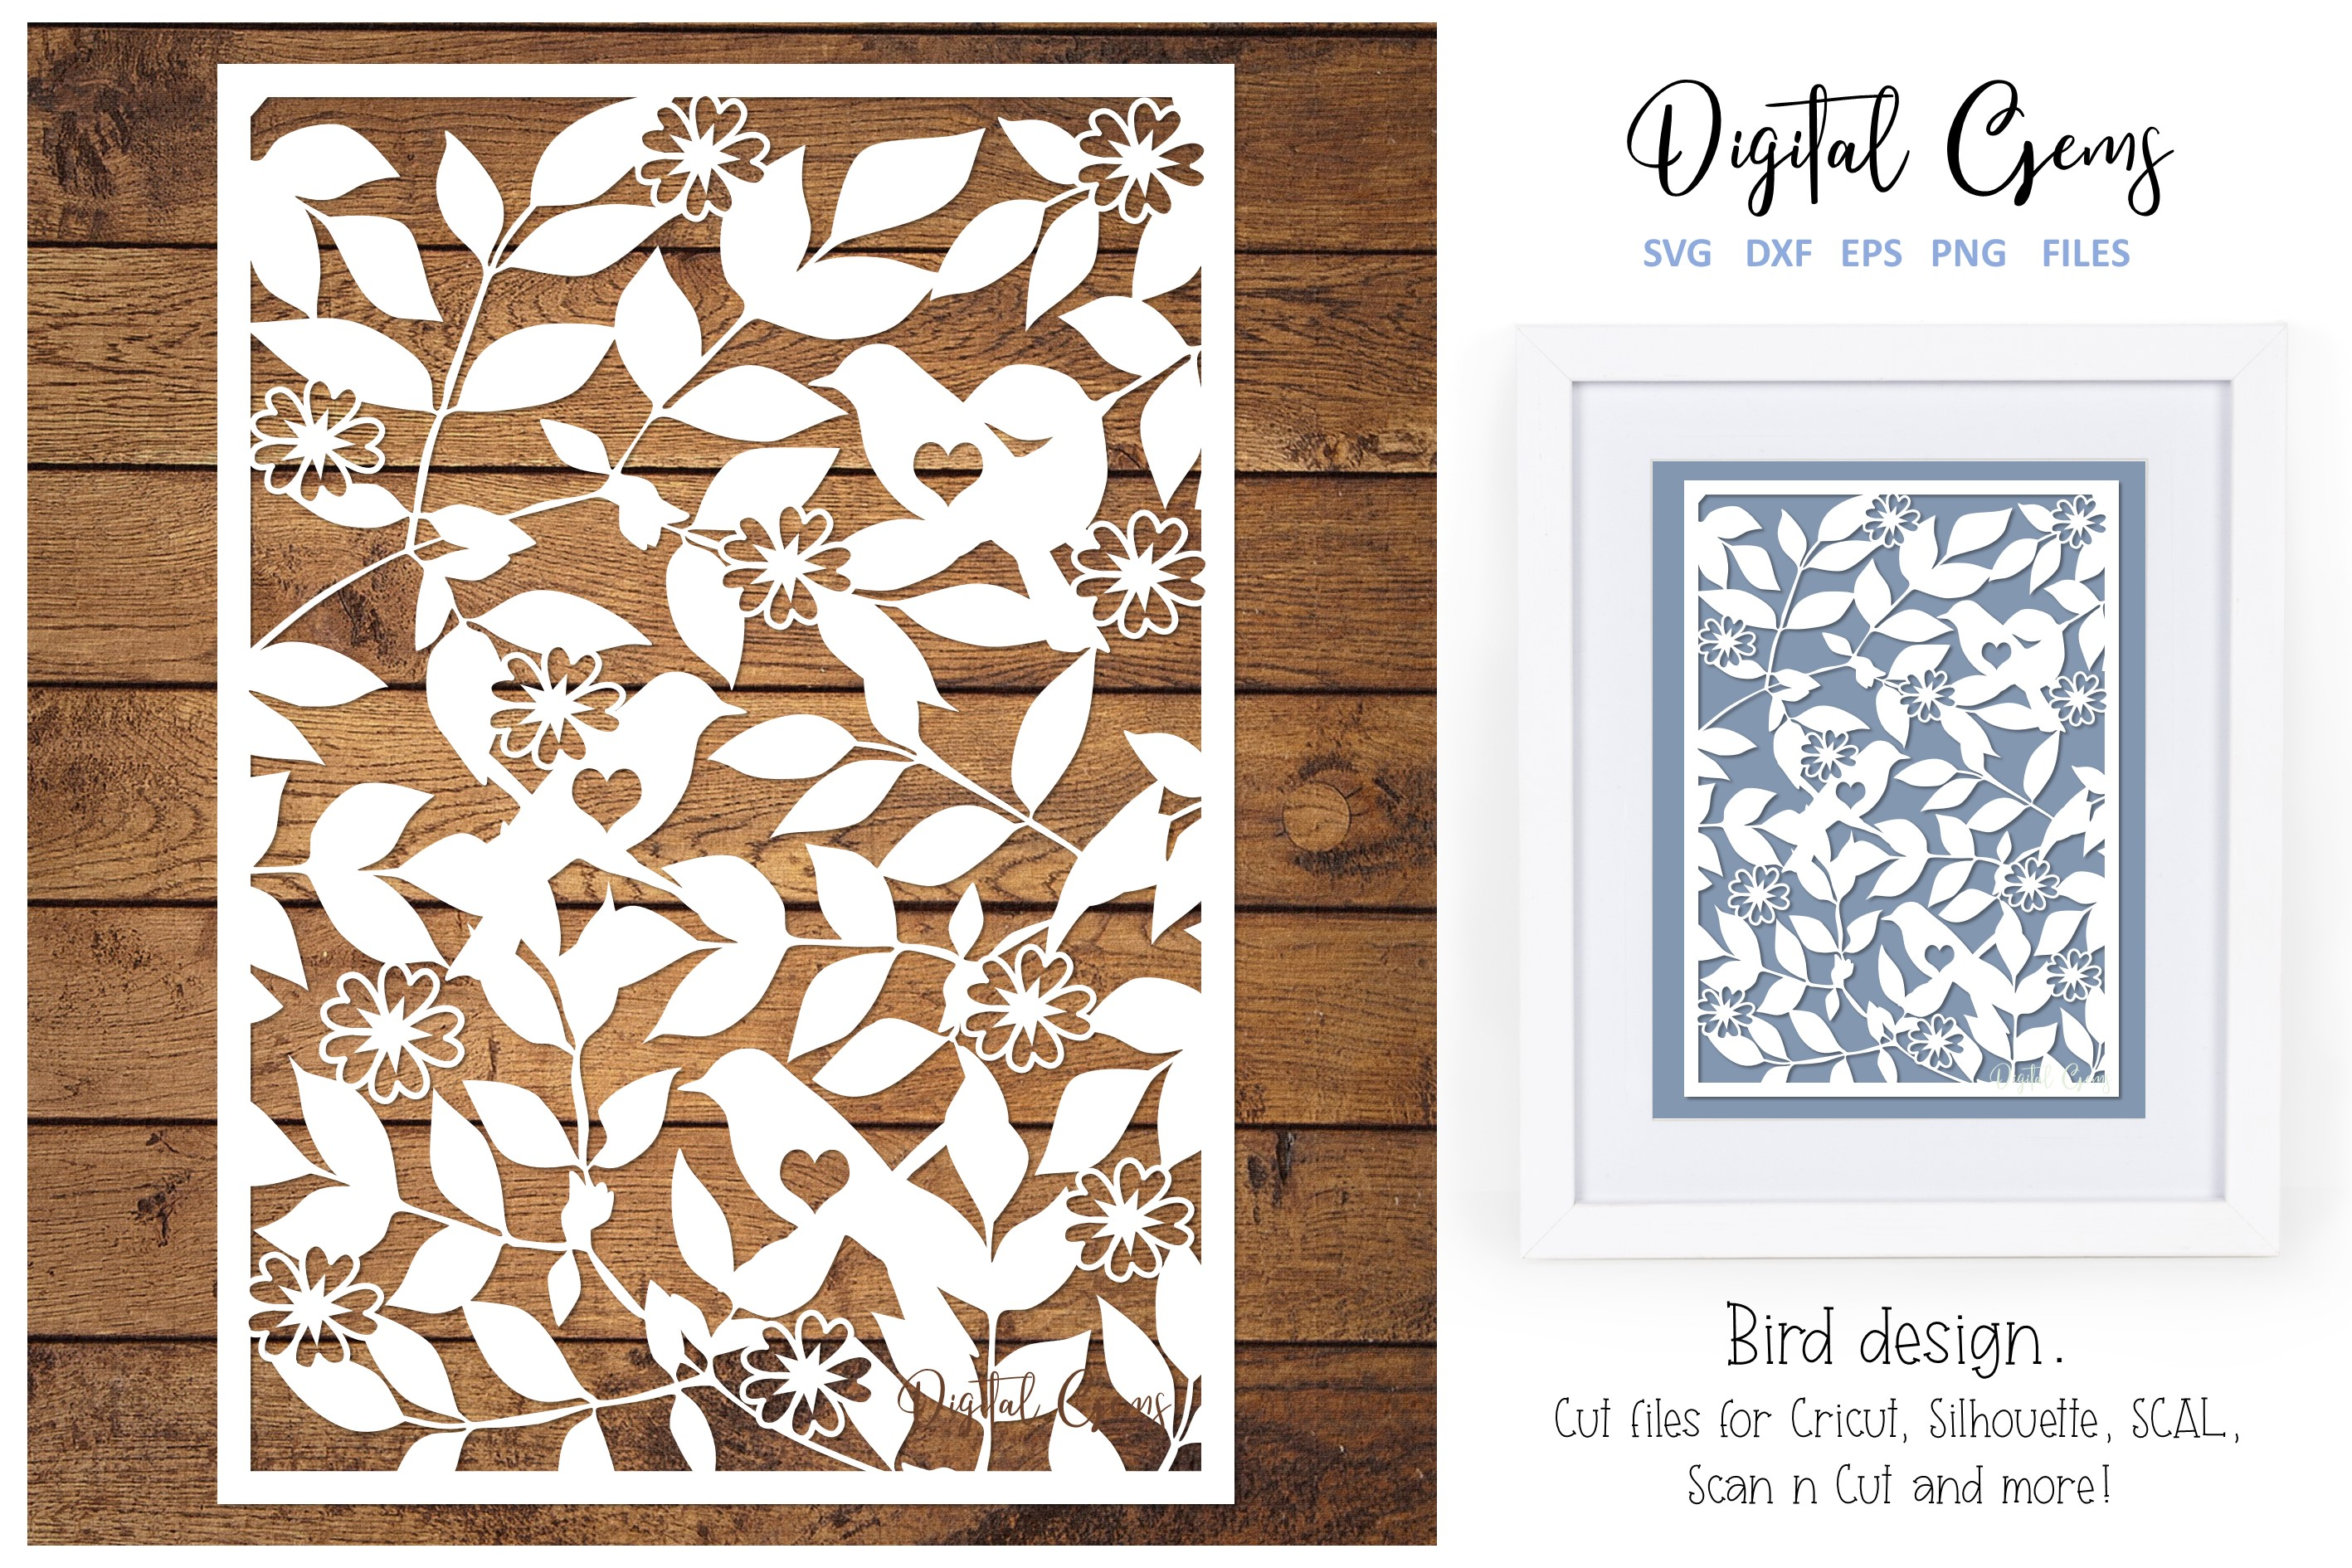 Download Free Bird Papercut Design Graphic By Digital Gems Creative Fabrica for Cricut Explore, Silhouette and other cutting machines.